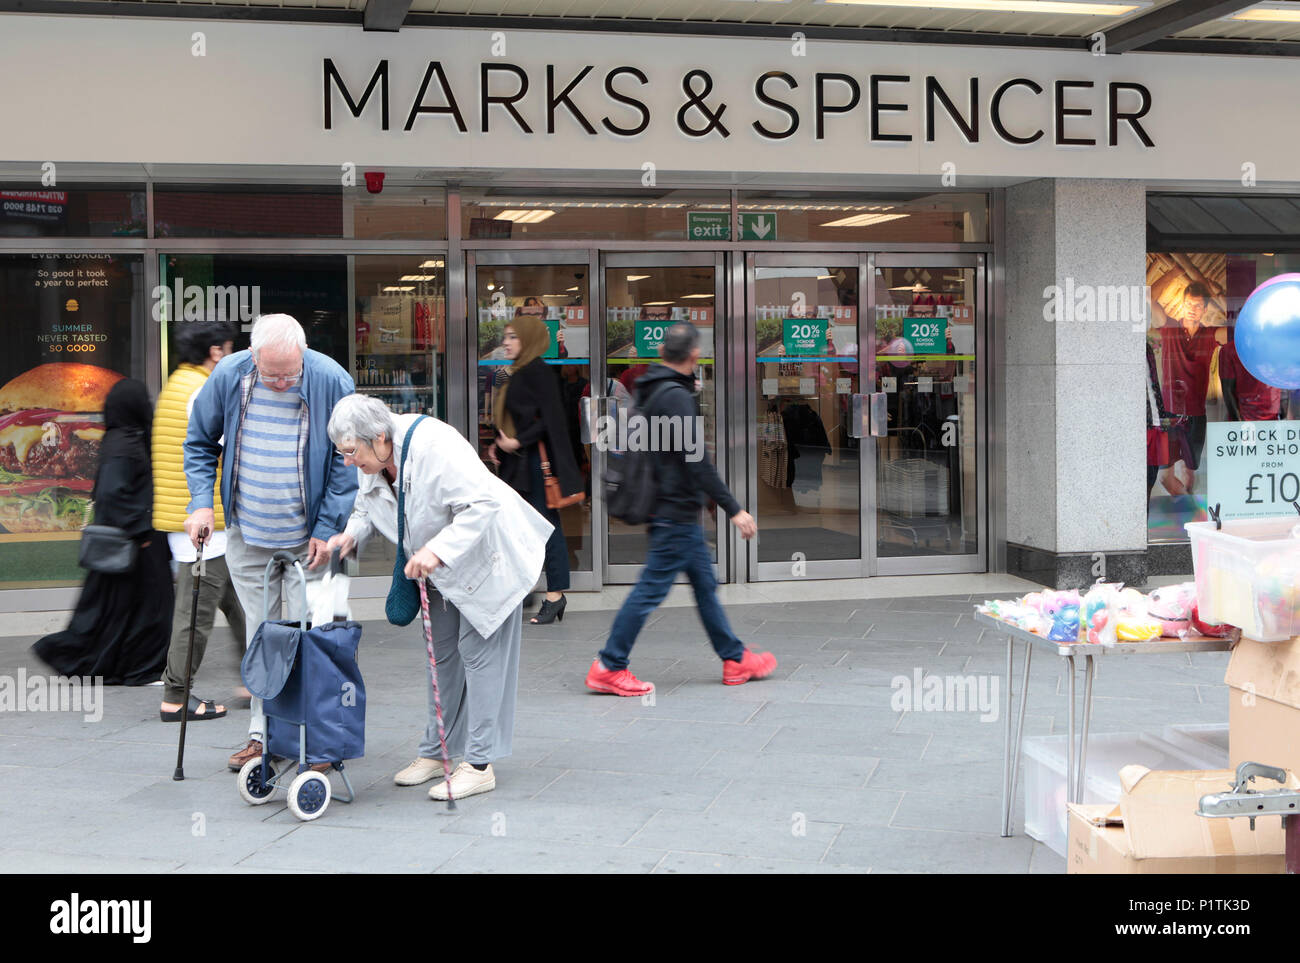 A MARKS AND SPENCER STORE. Shops and people shopping in Harrow, middlesex, London, UK - Stock Image